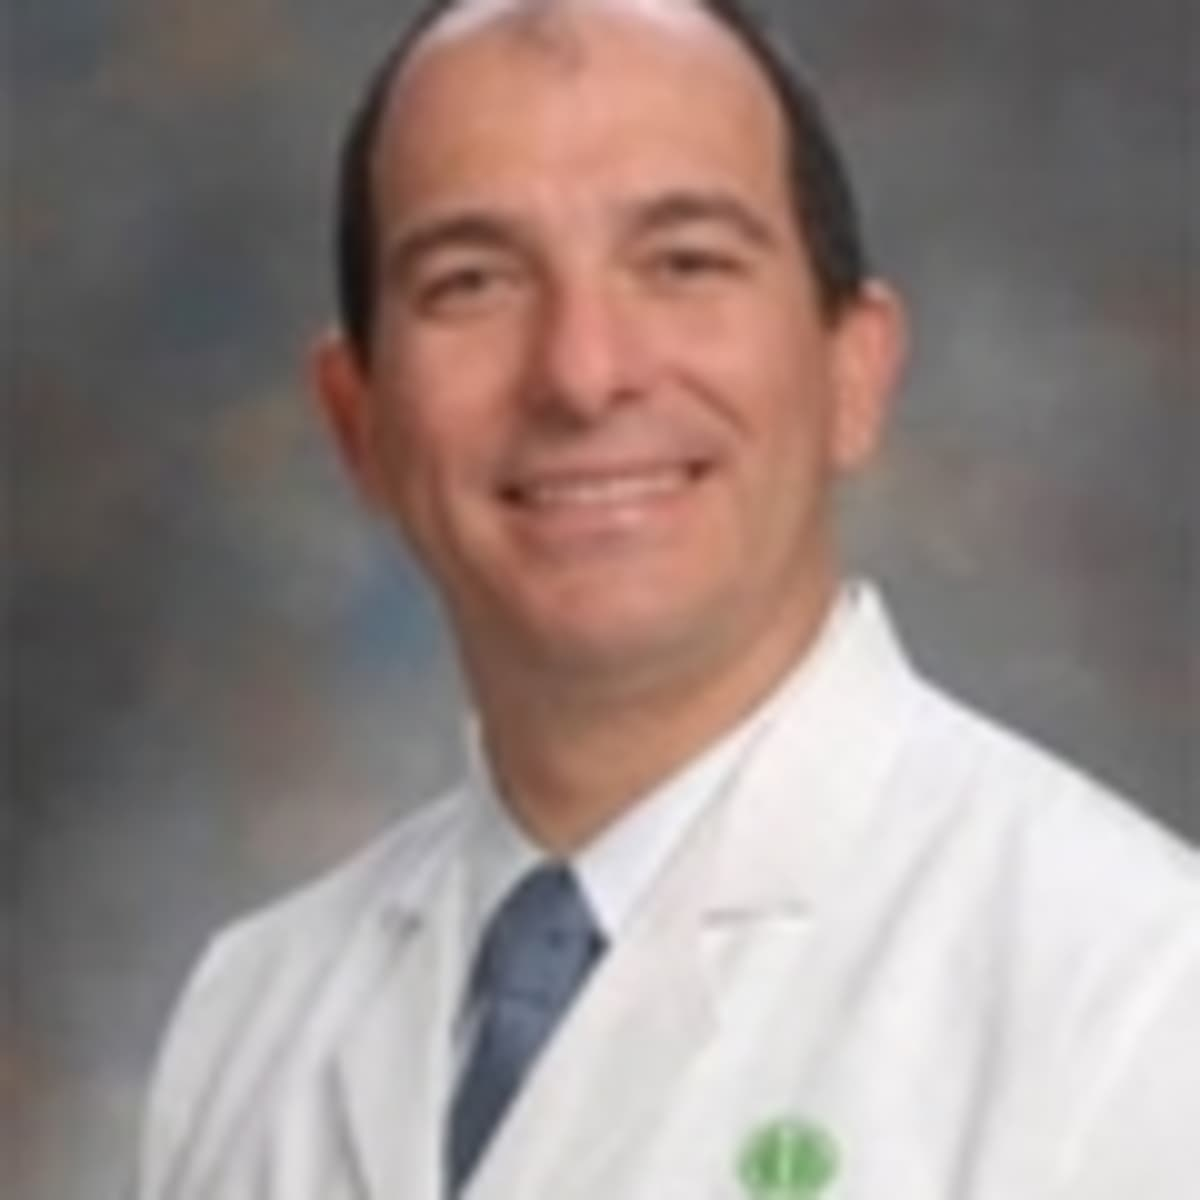 reviews dr juan ronderos md pensacola fl neurological surgeon